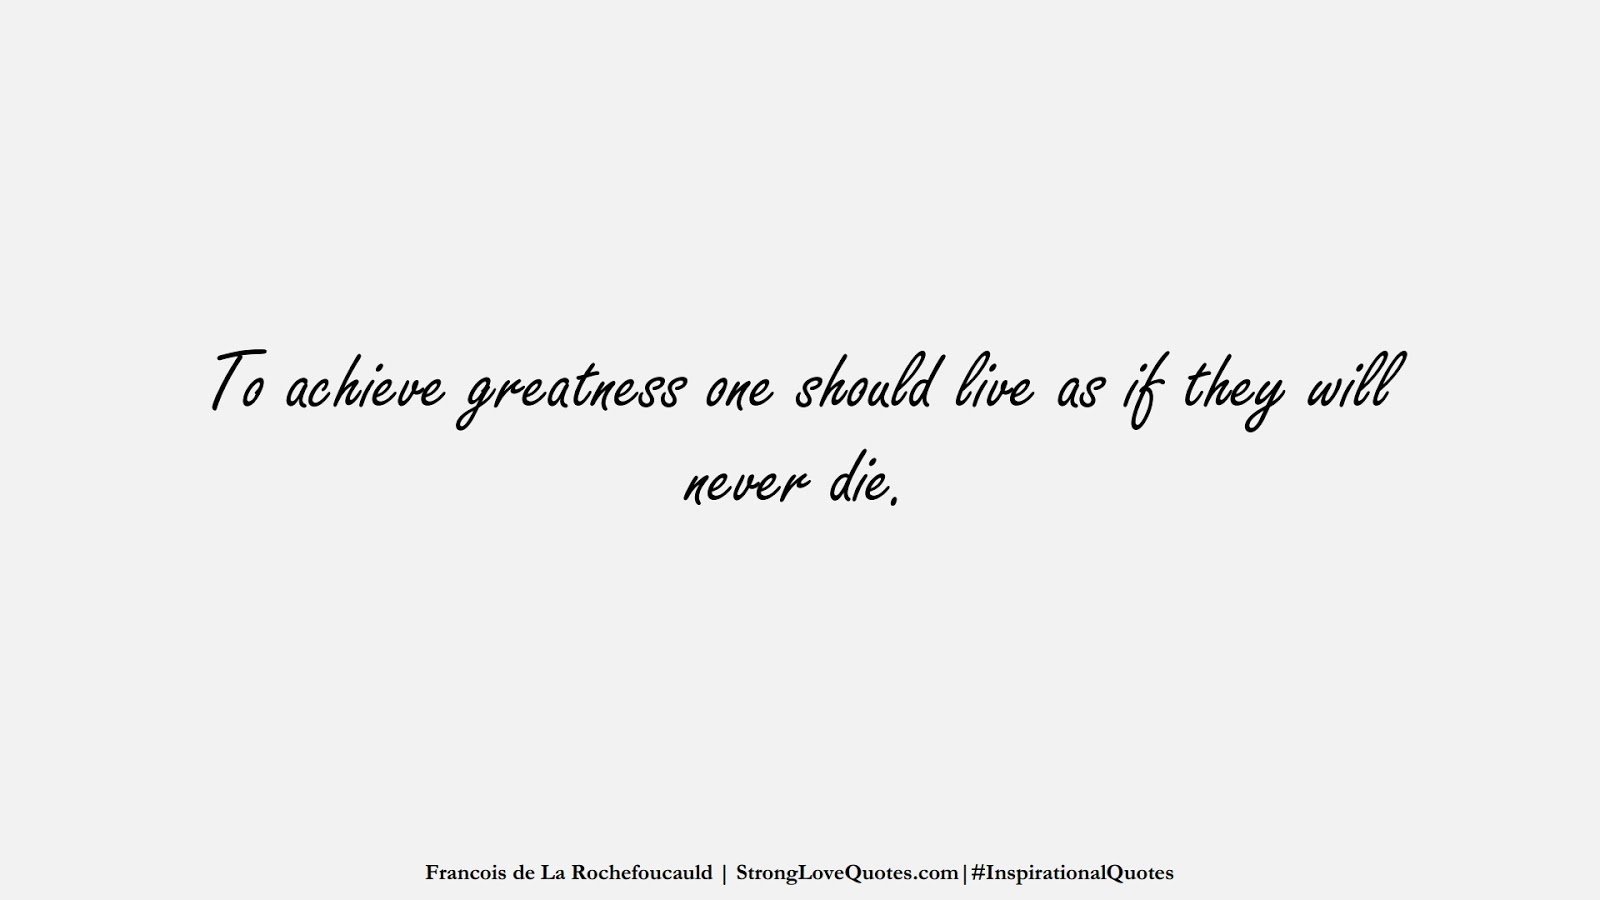 To achieve greatness one should live as if they will never die. (Francois de La Rochefoucauld);  #InspirationalQuotes